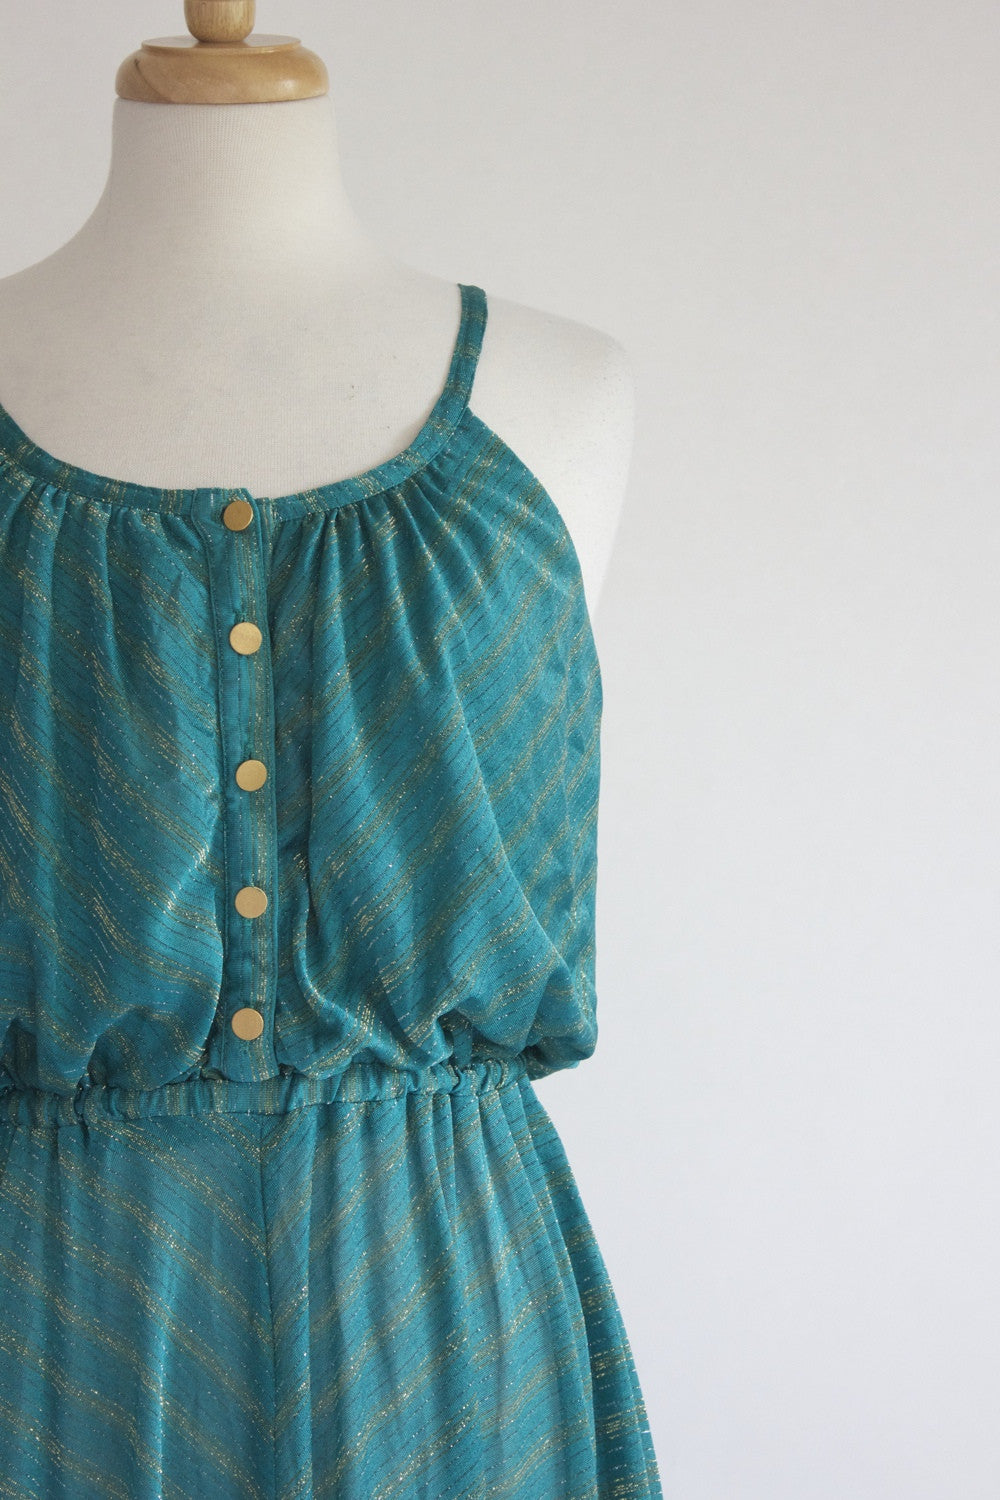 70s sheer Metallic Dress